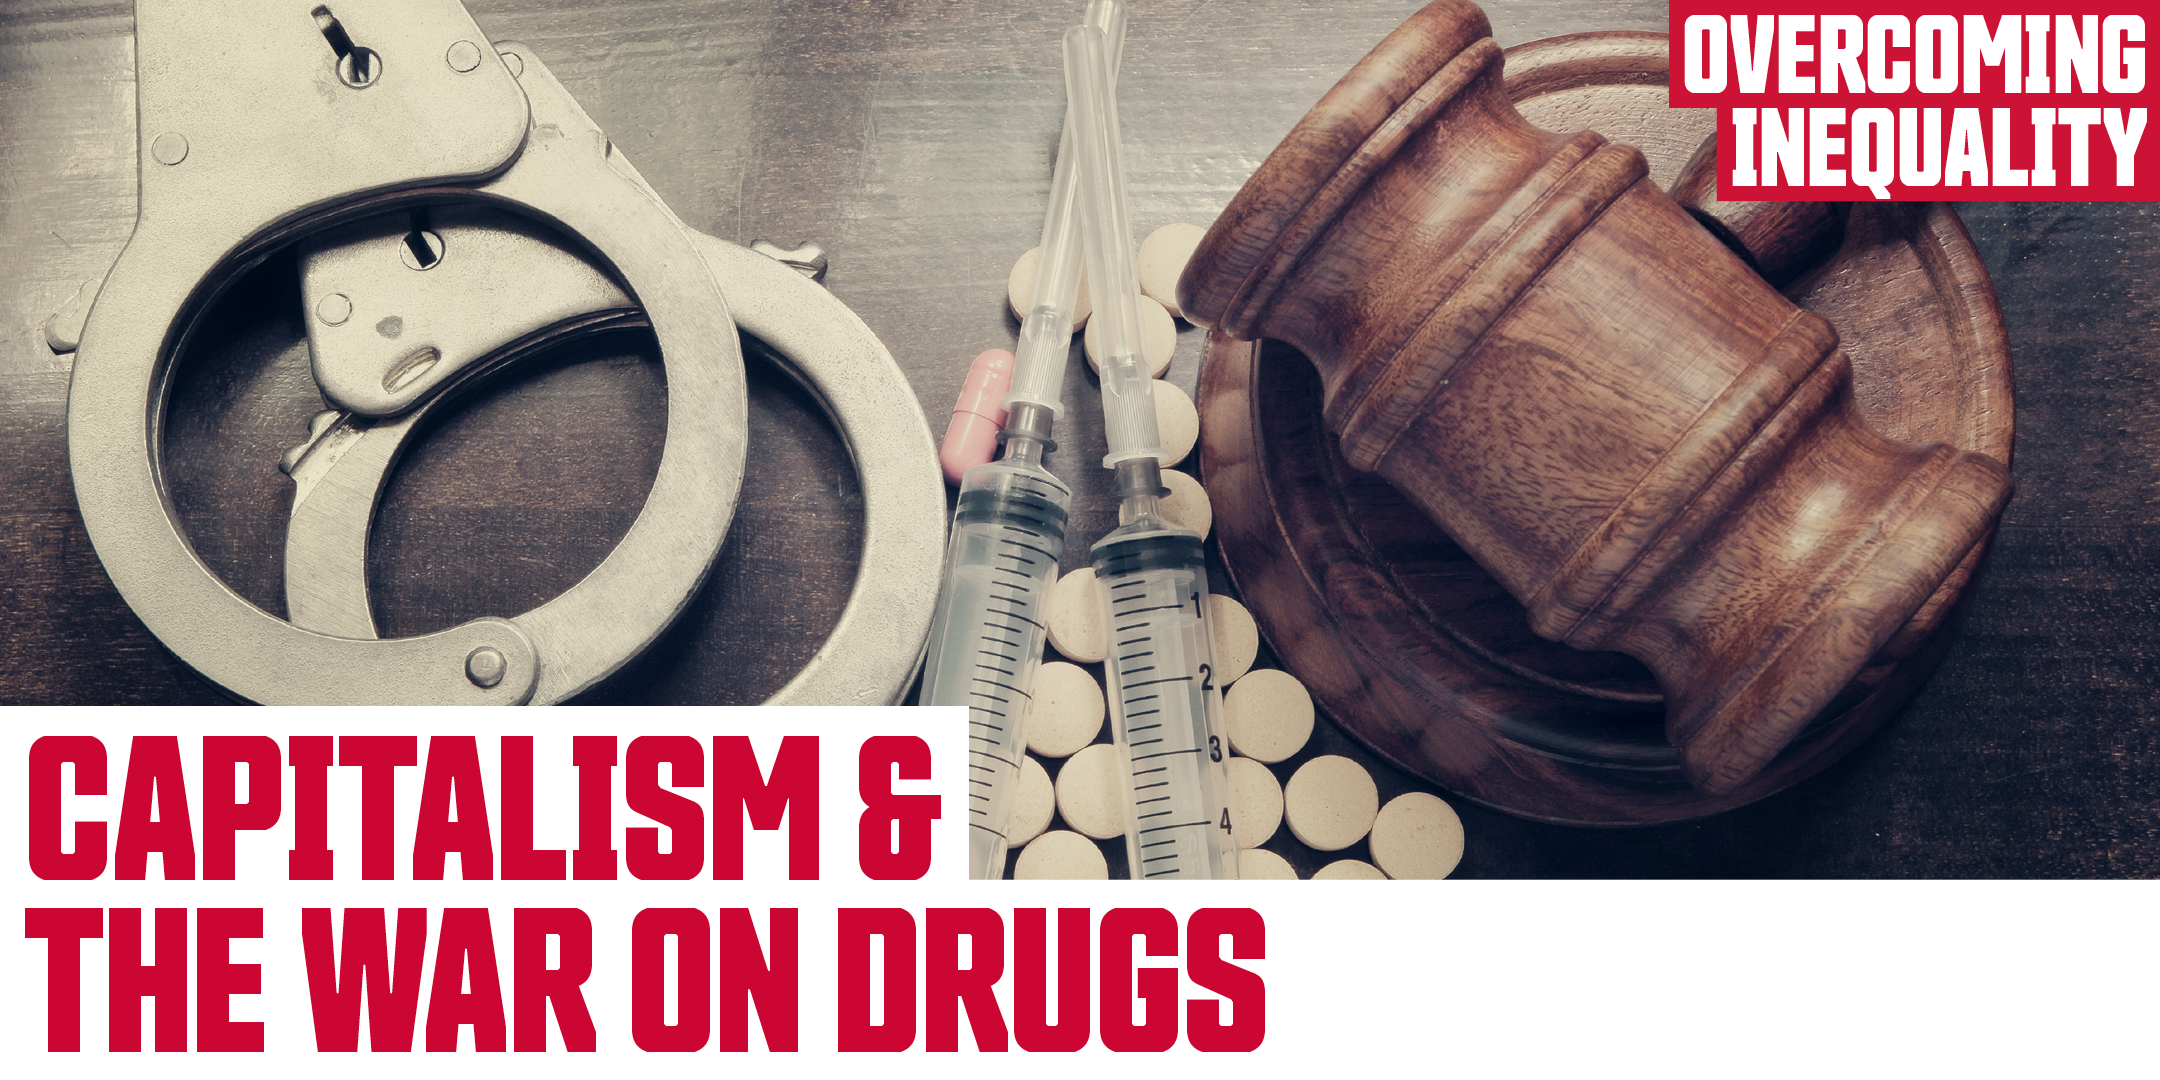 Capitalism and the War on Drugs